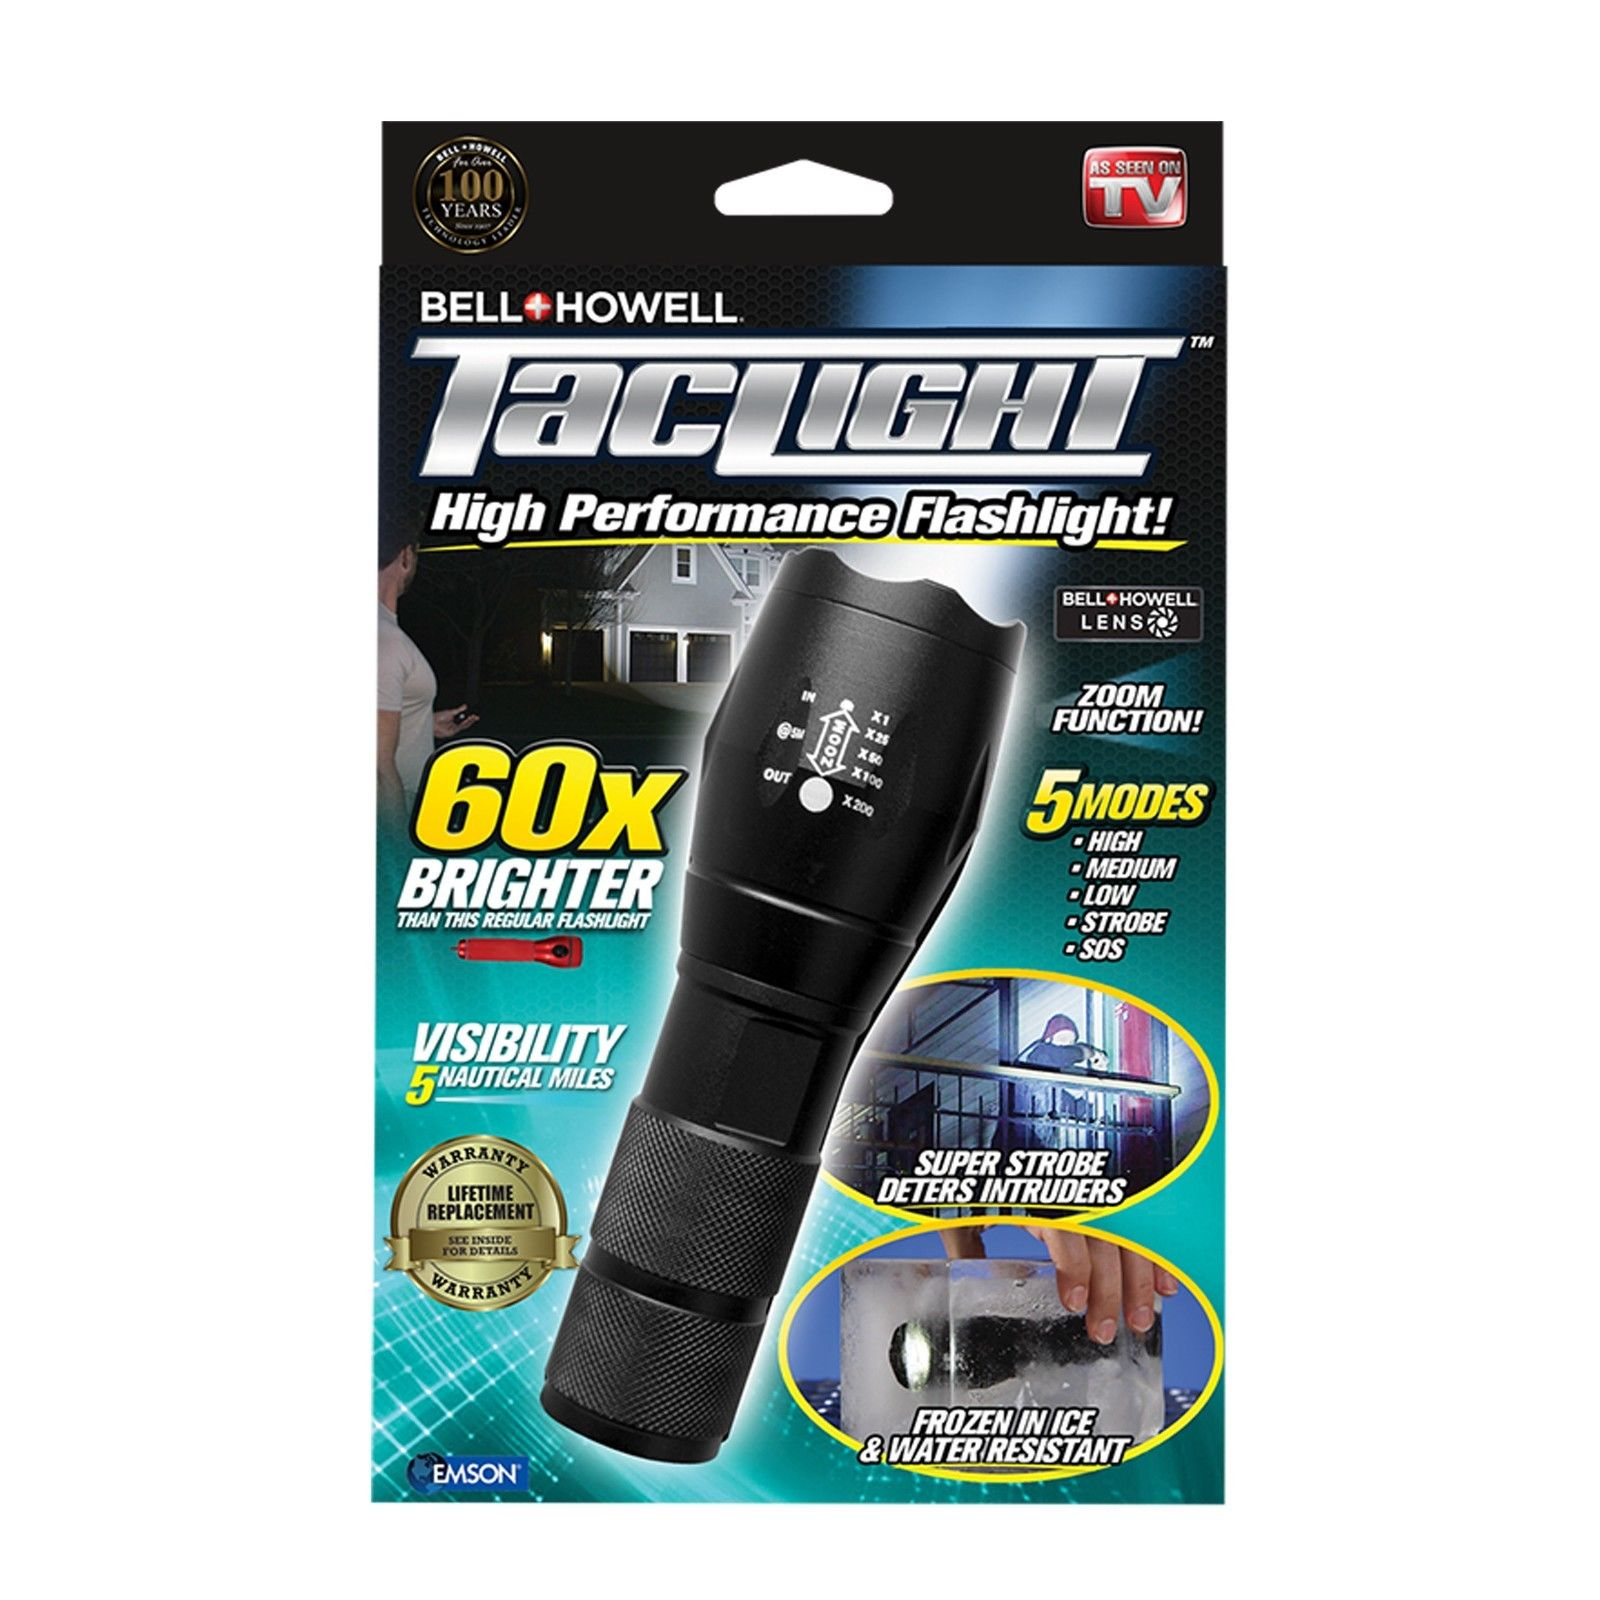 Bell + Howell Taclight 60X Brighter Tactical Flashlight with 5 Modes & Zoom Function As Seen on TV by E Mishan and Sons Inc